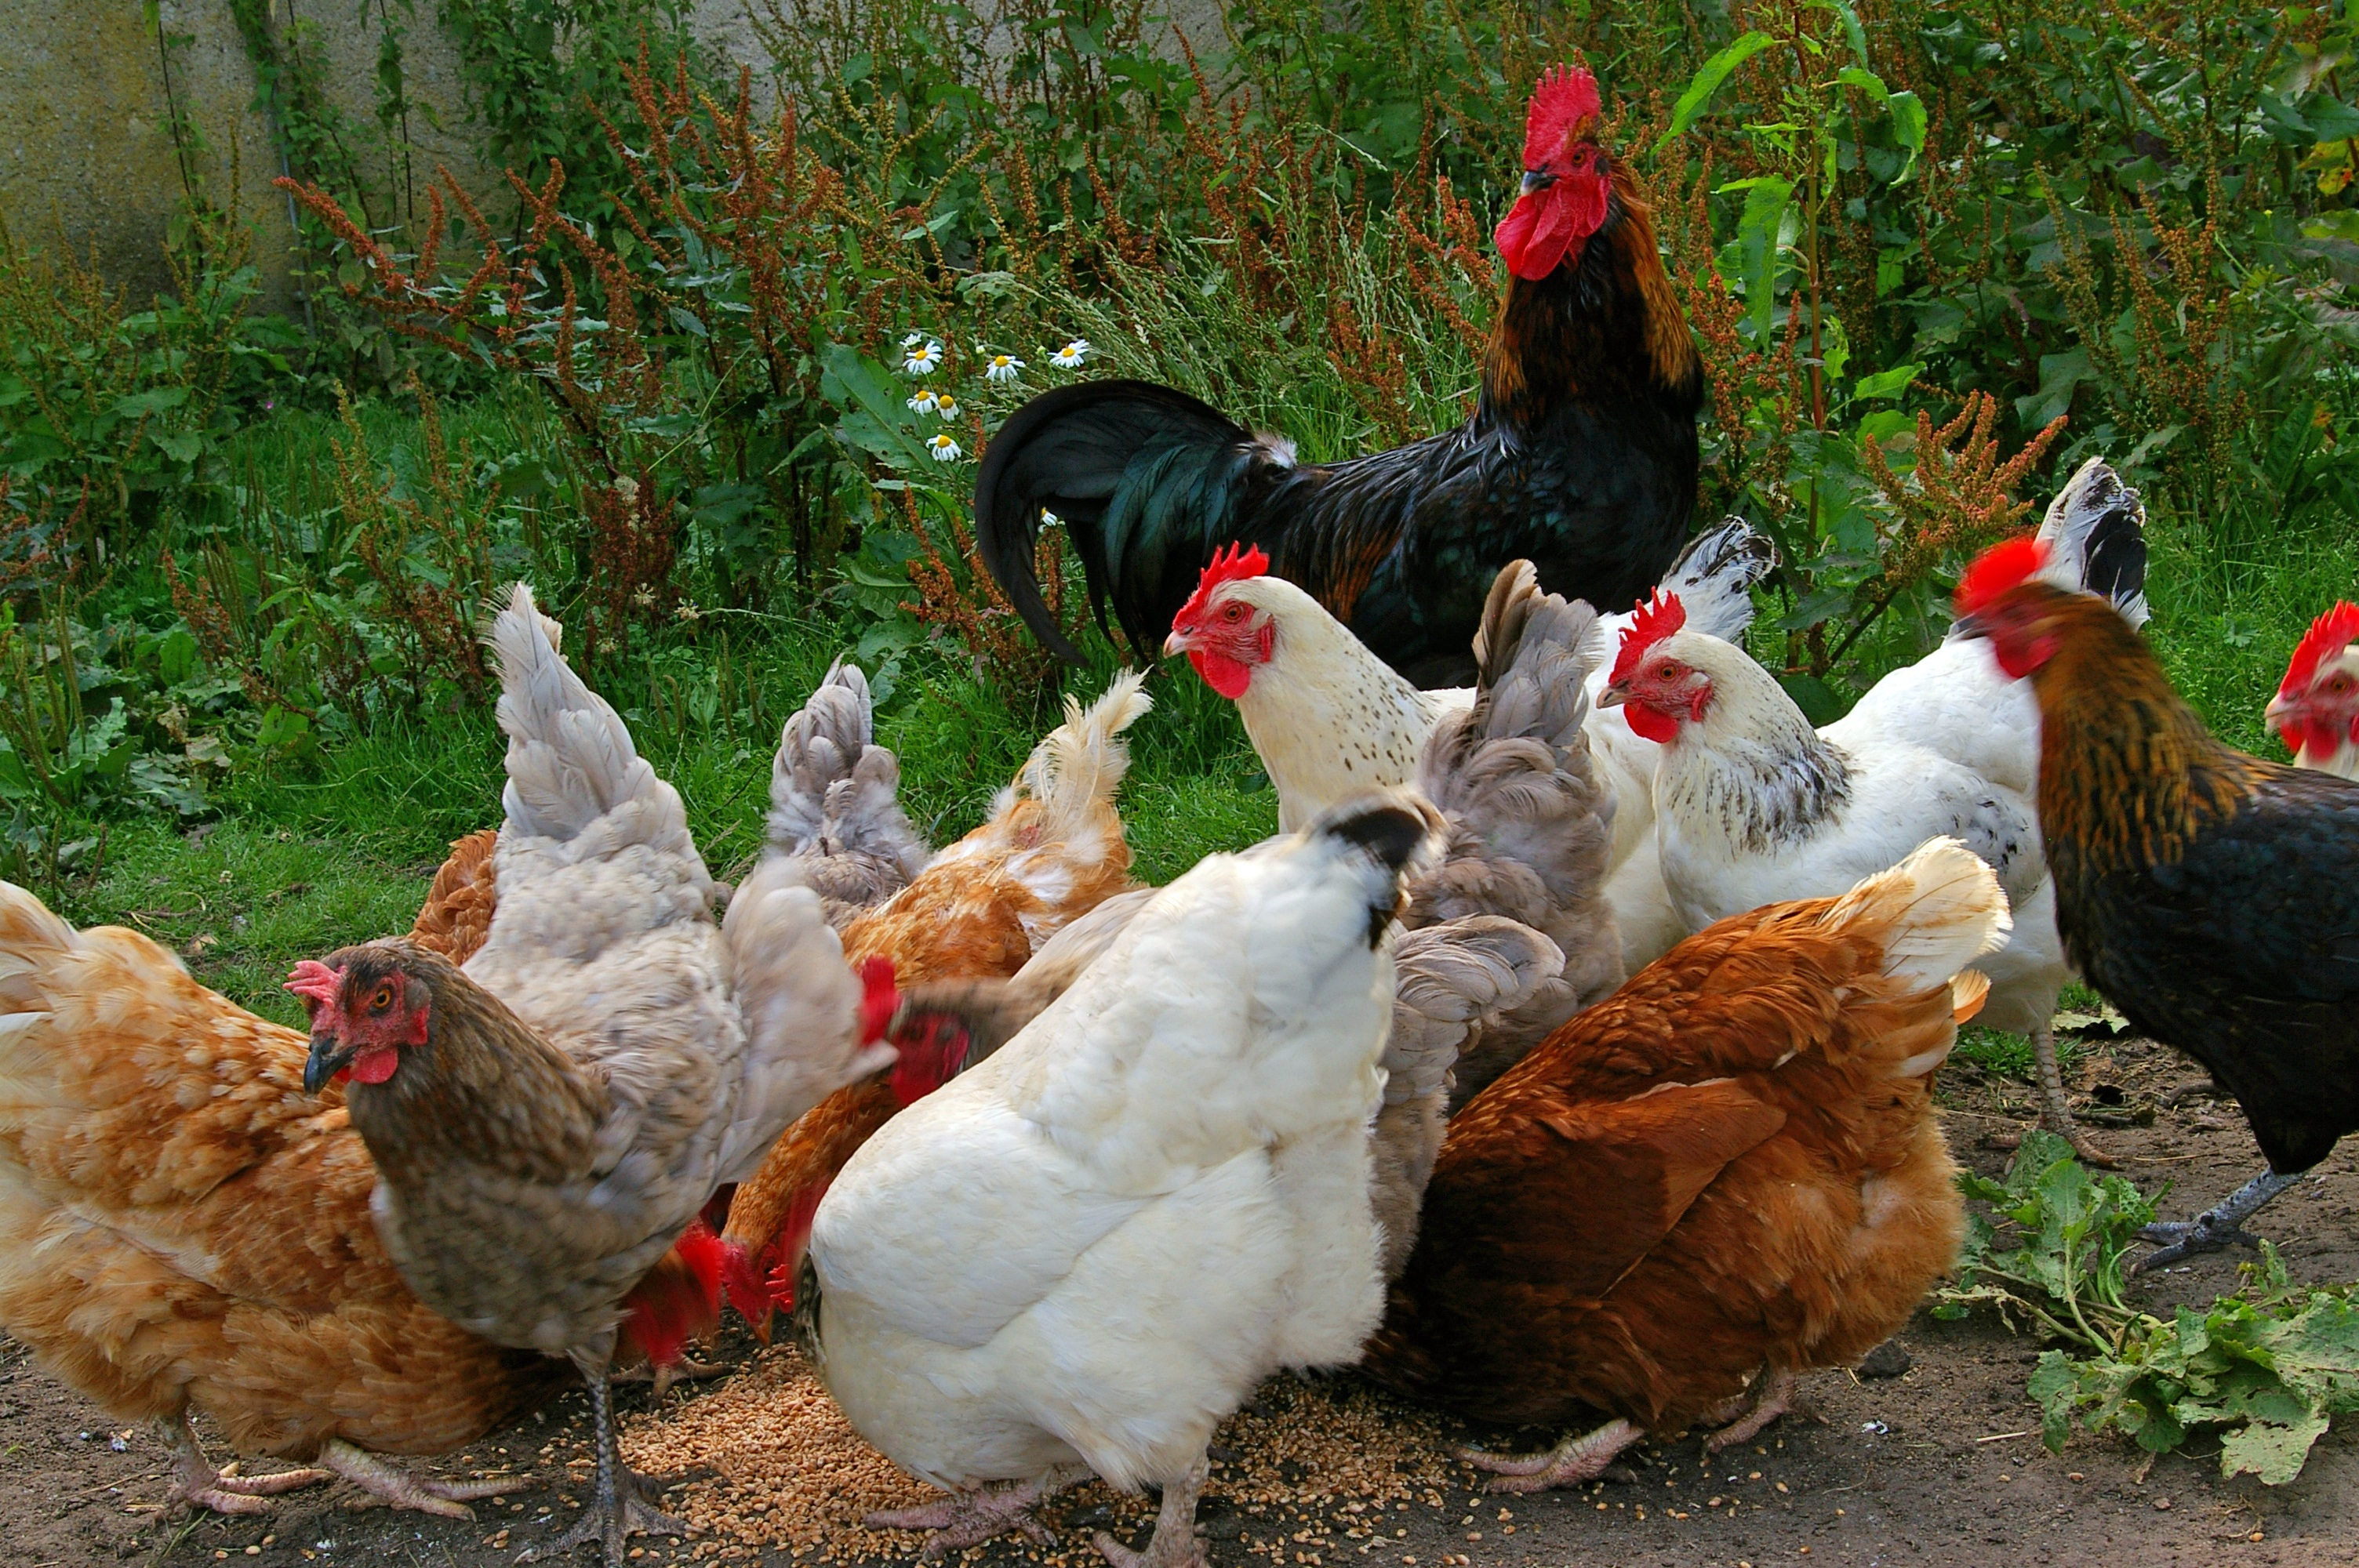 bird-farm-village-food-chicken-fowl-704974-pxhere.com